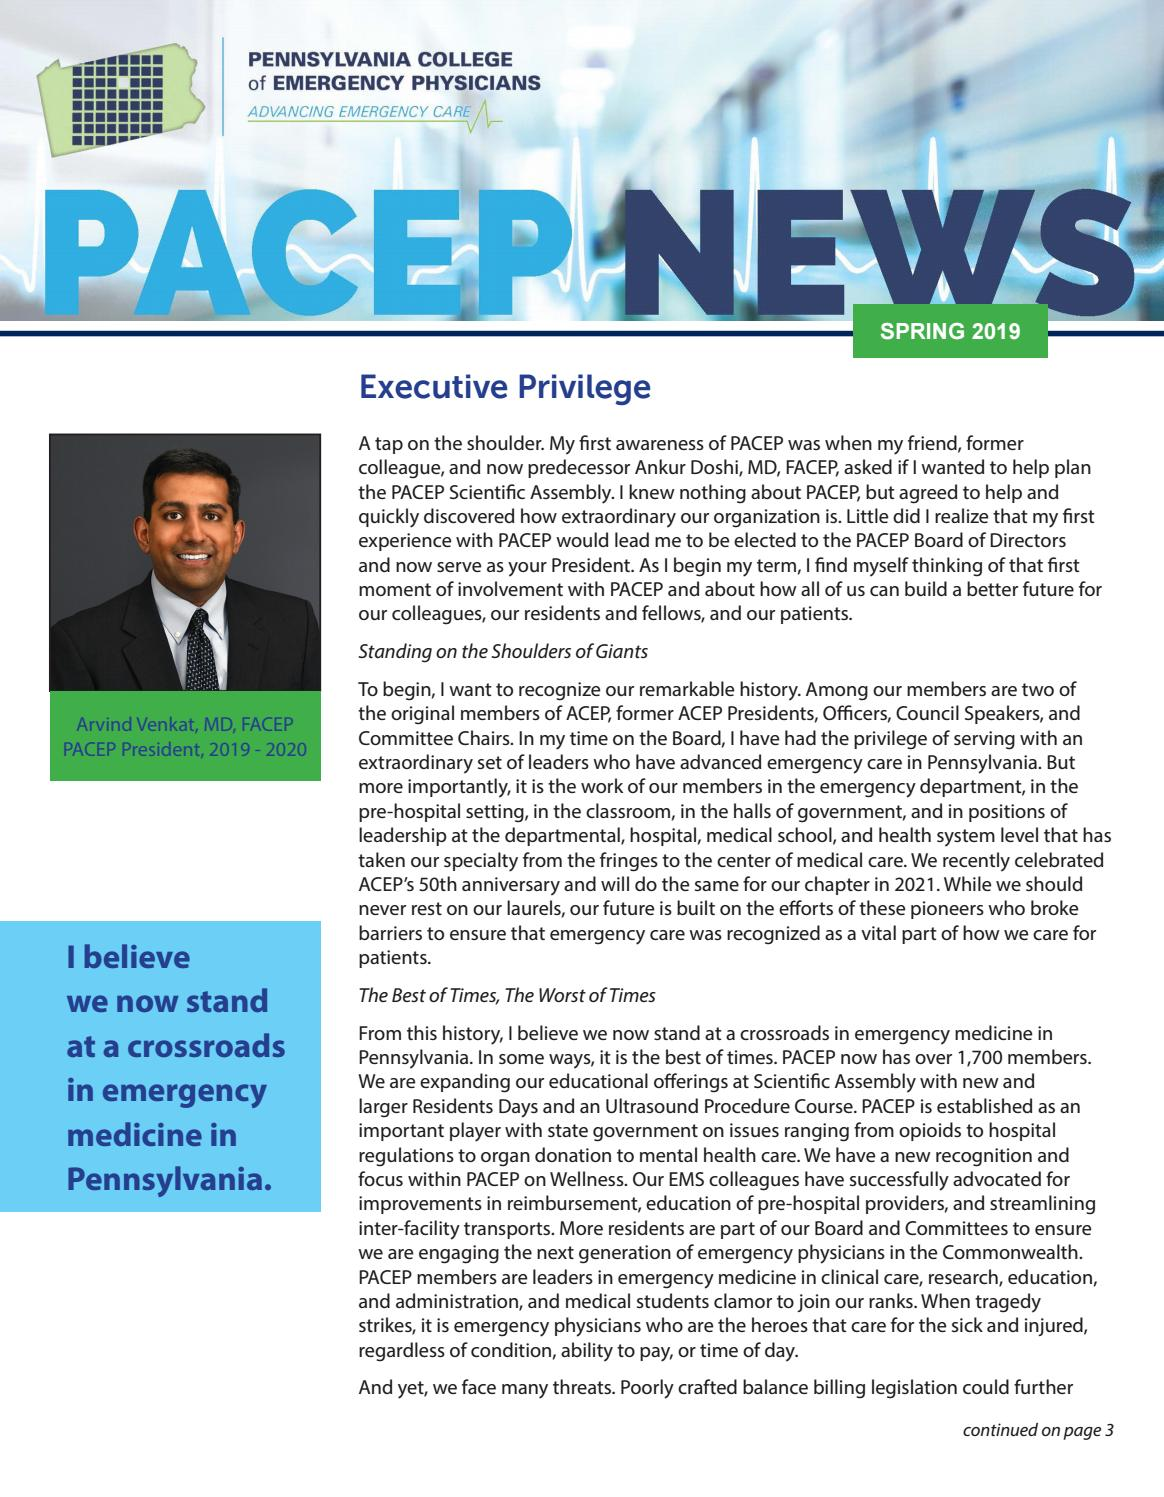 PACEP News - Spring 2019 by SSMS - issuu